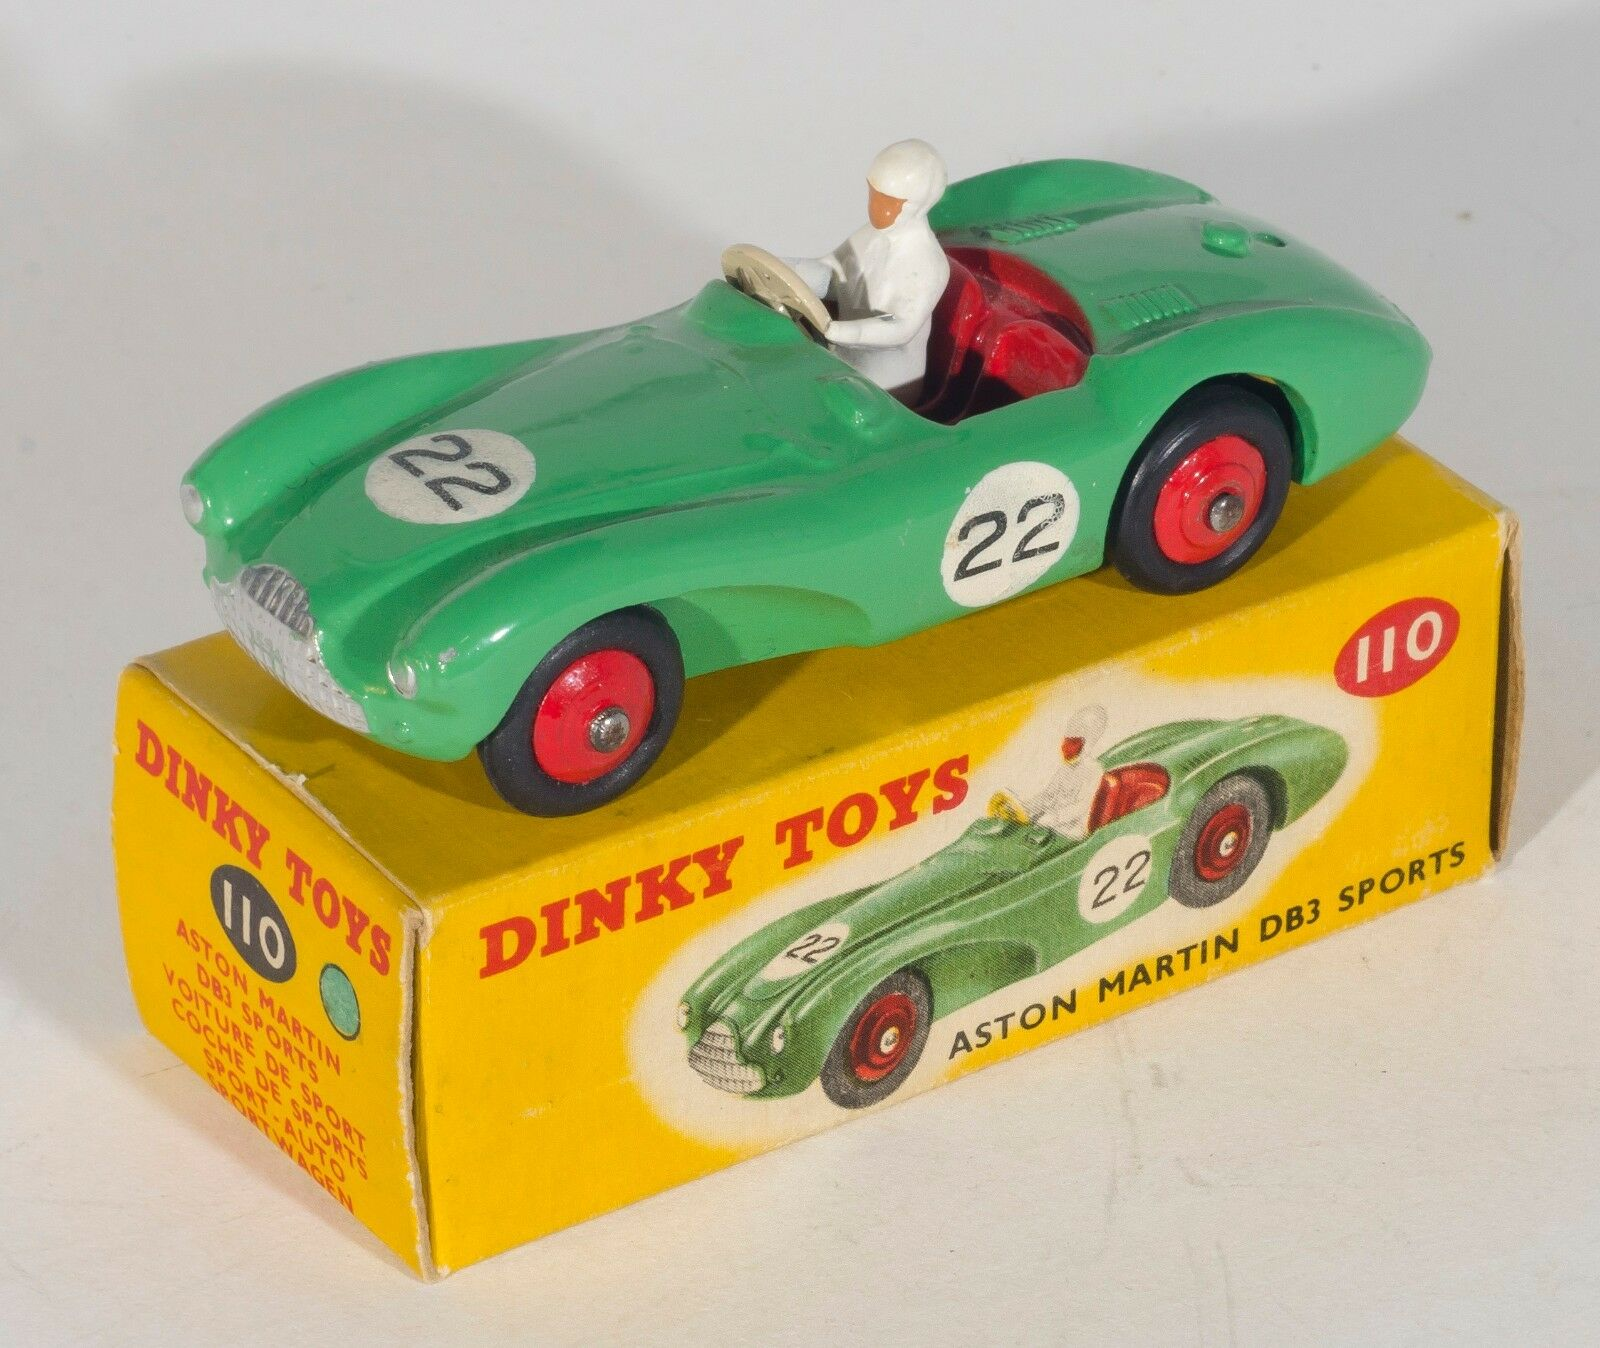 Dinky 110 Aston Martin DB3 Sports Car. Rare Mid-Green. RN  22. Boxed. 1950's